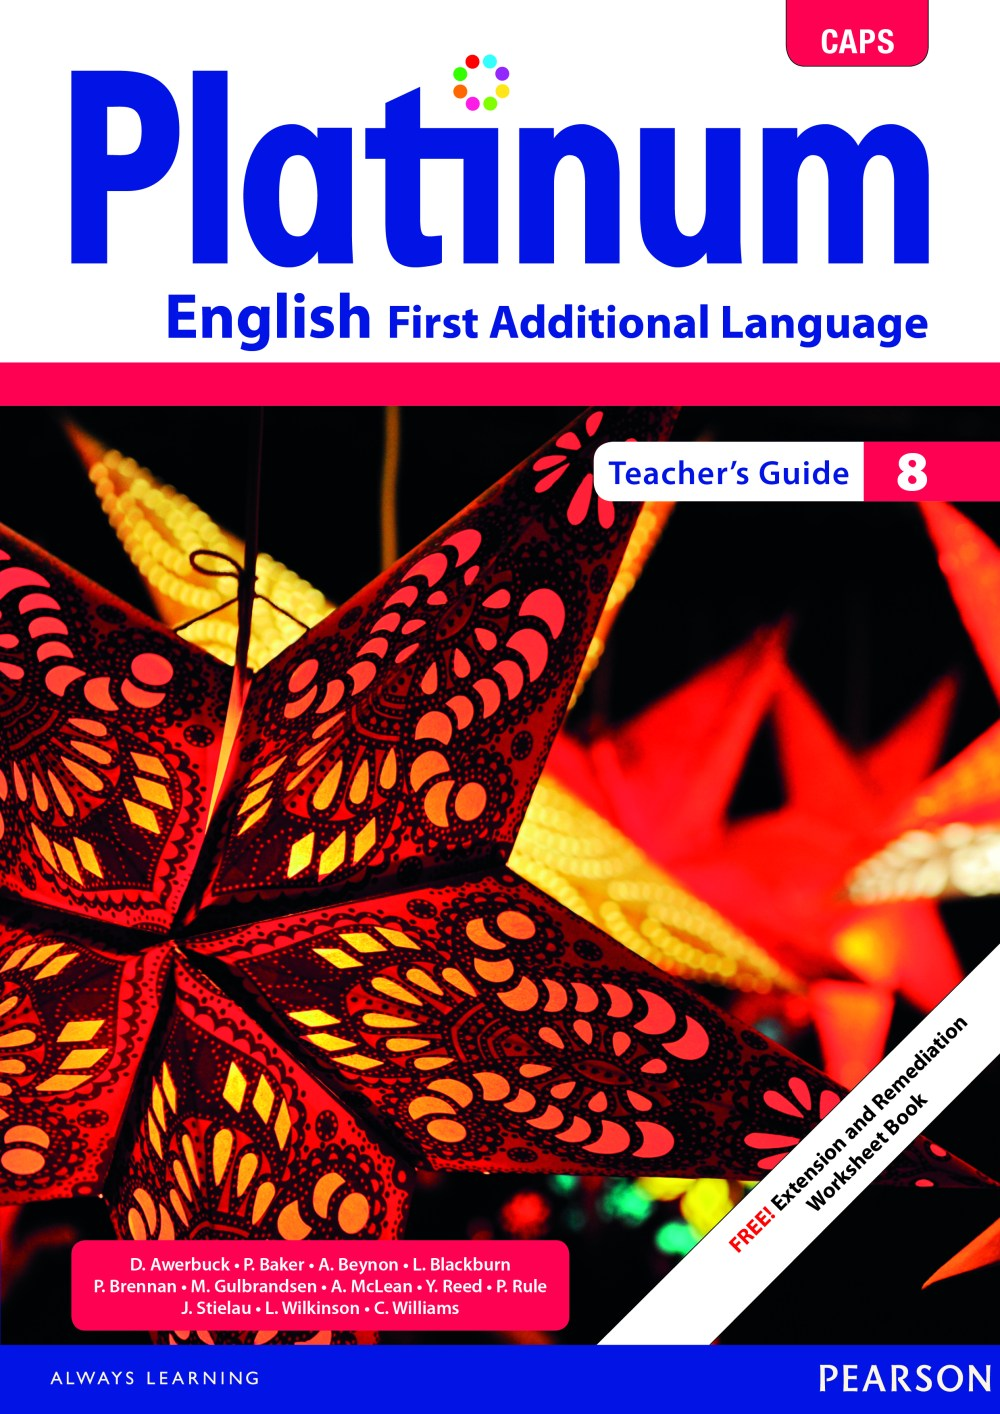 medium resolution of Platinum English First Additional Language Grade 8 Teacher's Guide ePDF  (perpetual licence)   WCED ePortal